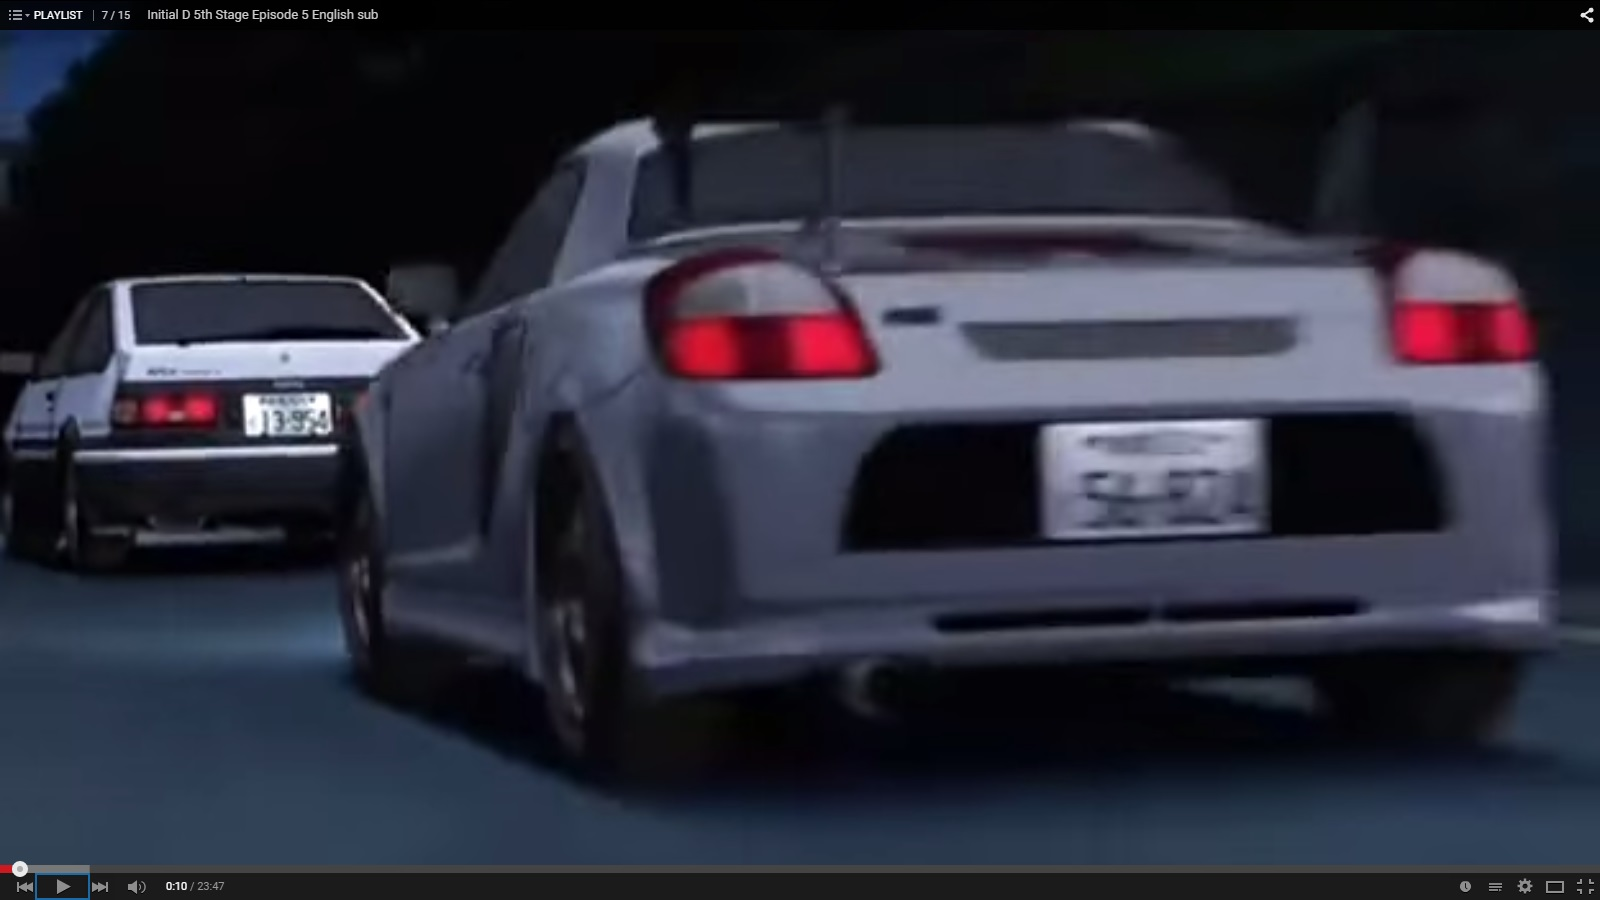 Just Watched Initial D The Car At The Back Of The Trueno